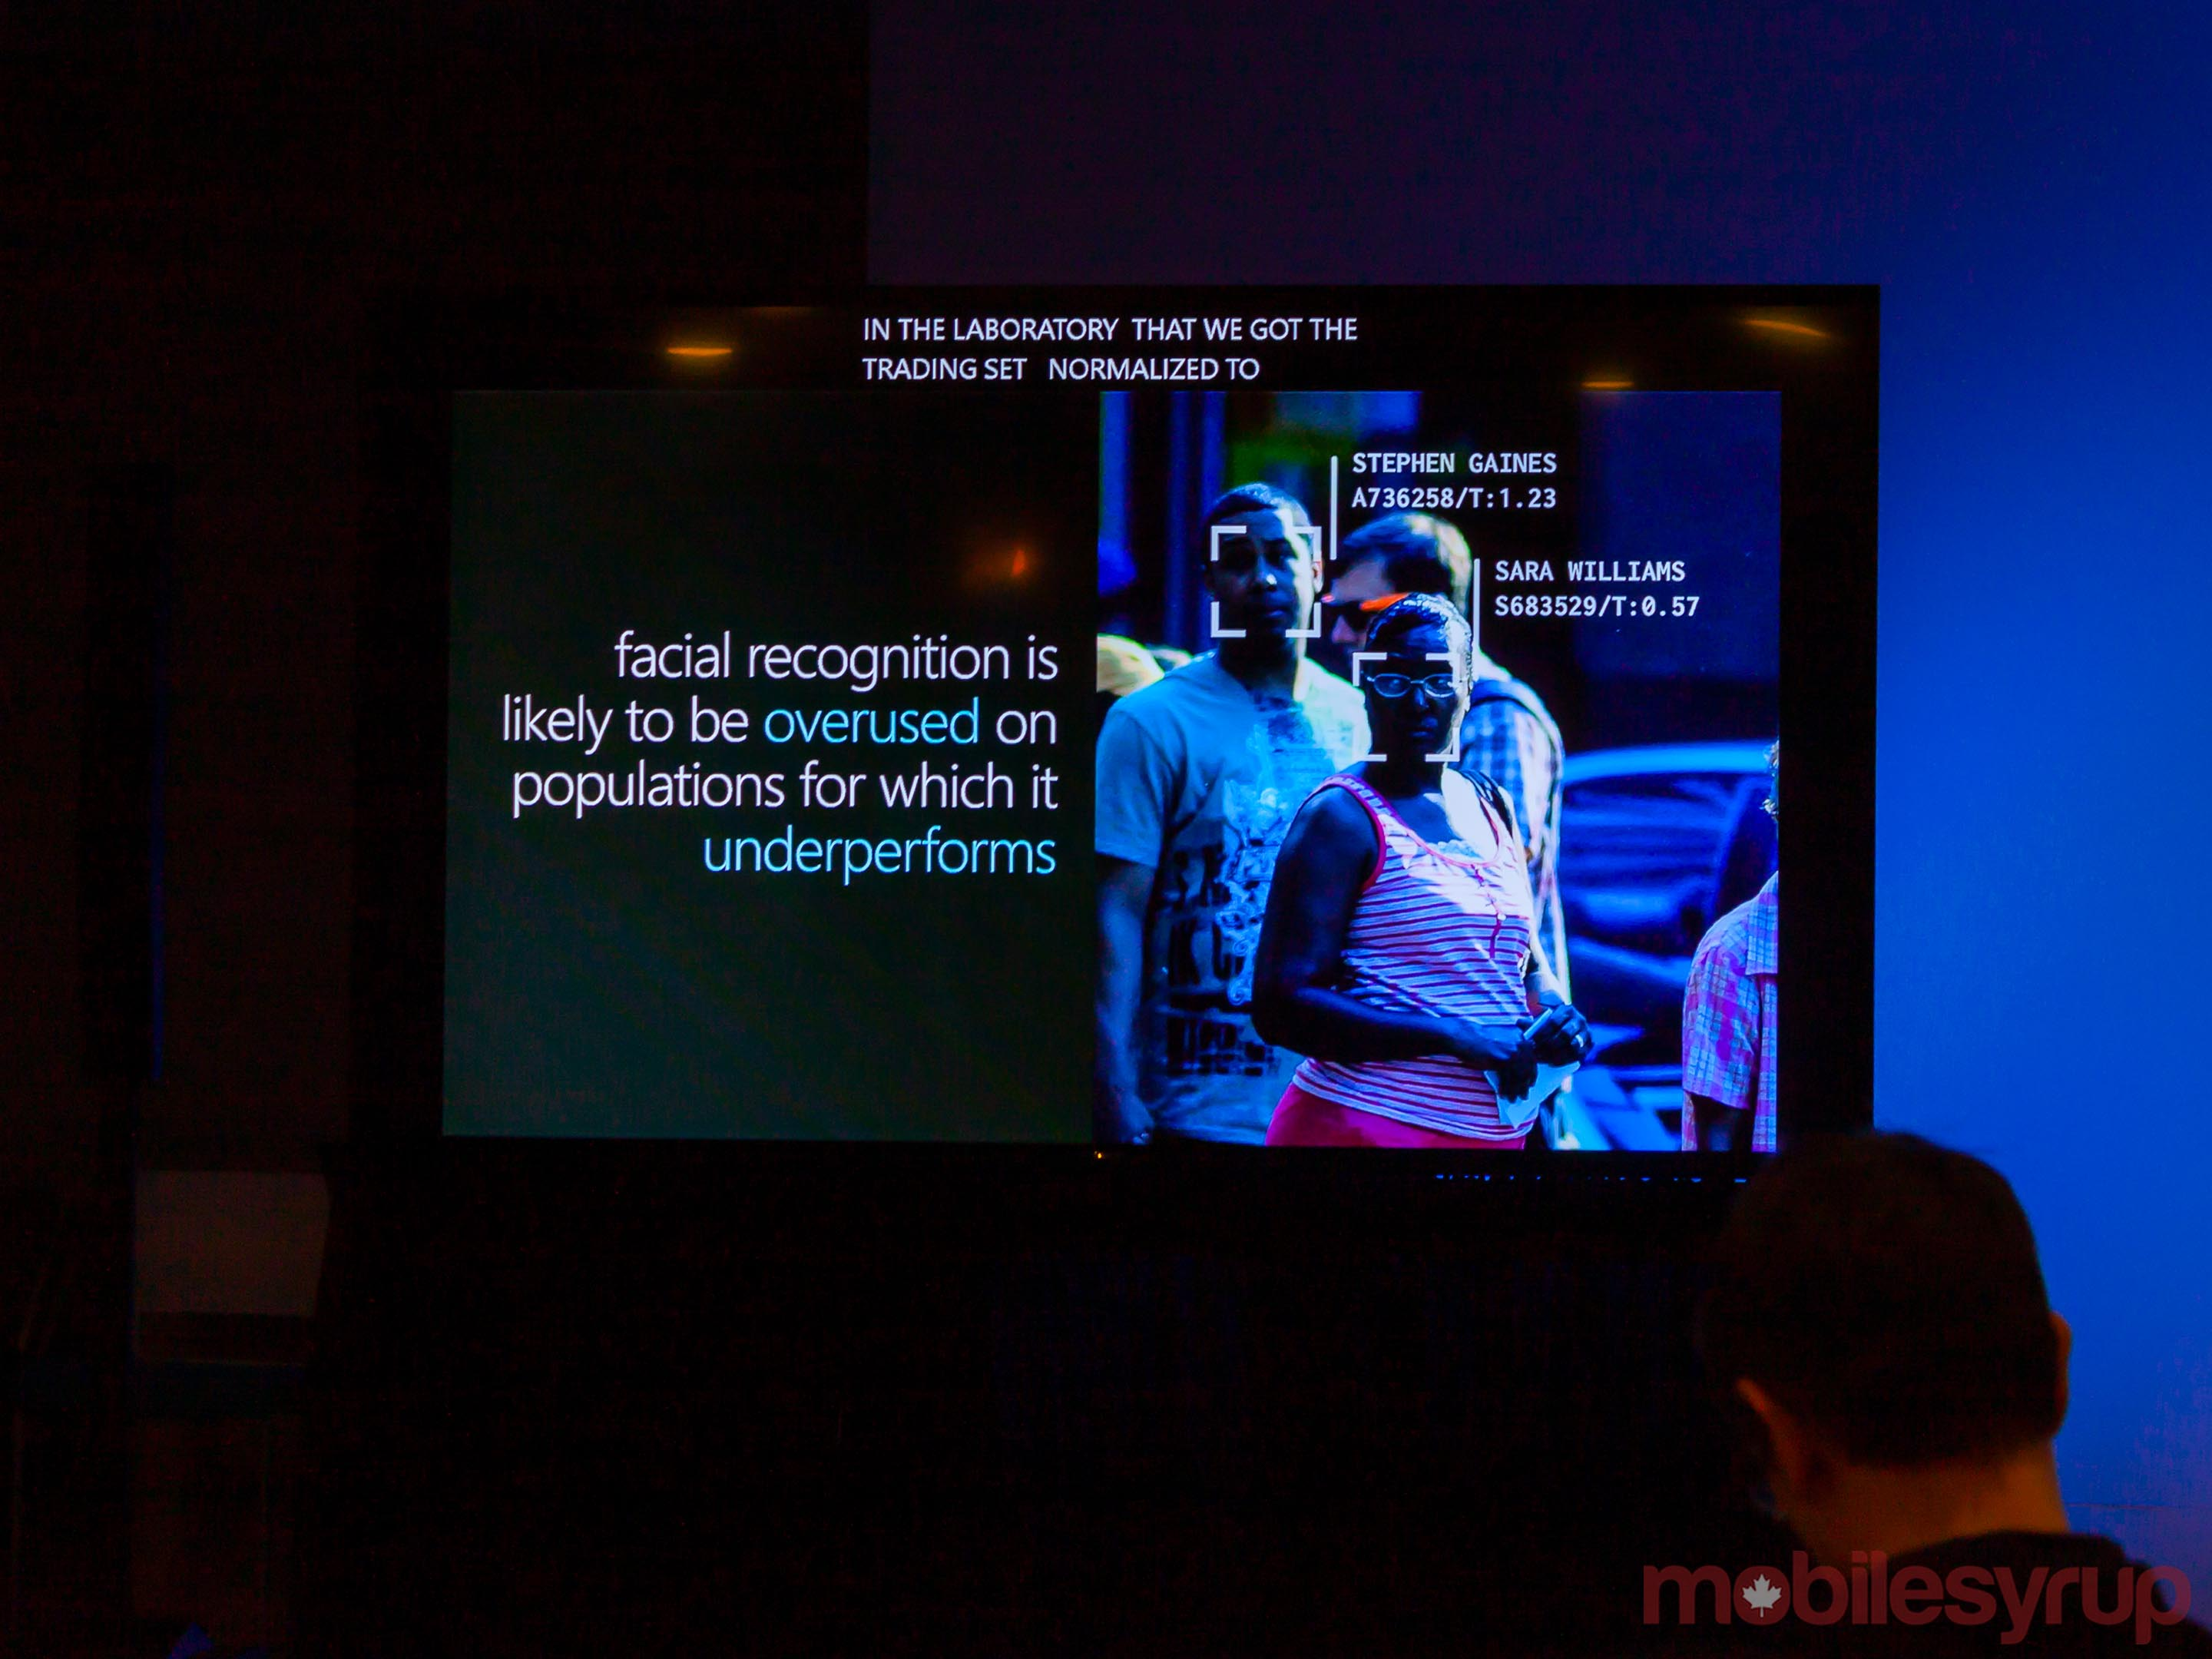 Fairness in AI systems like facial recognition